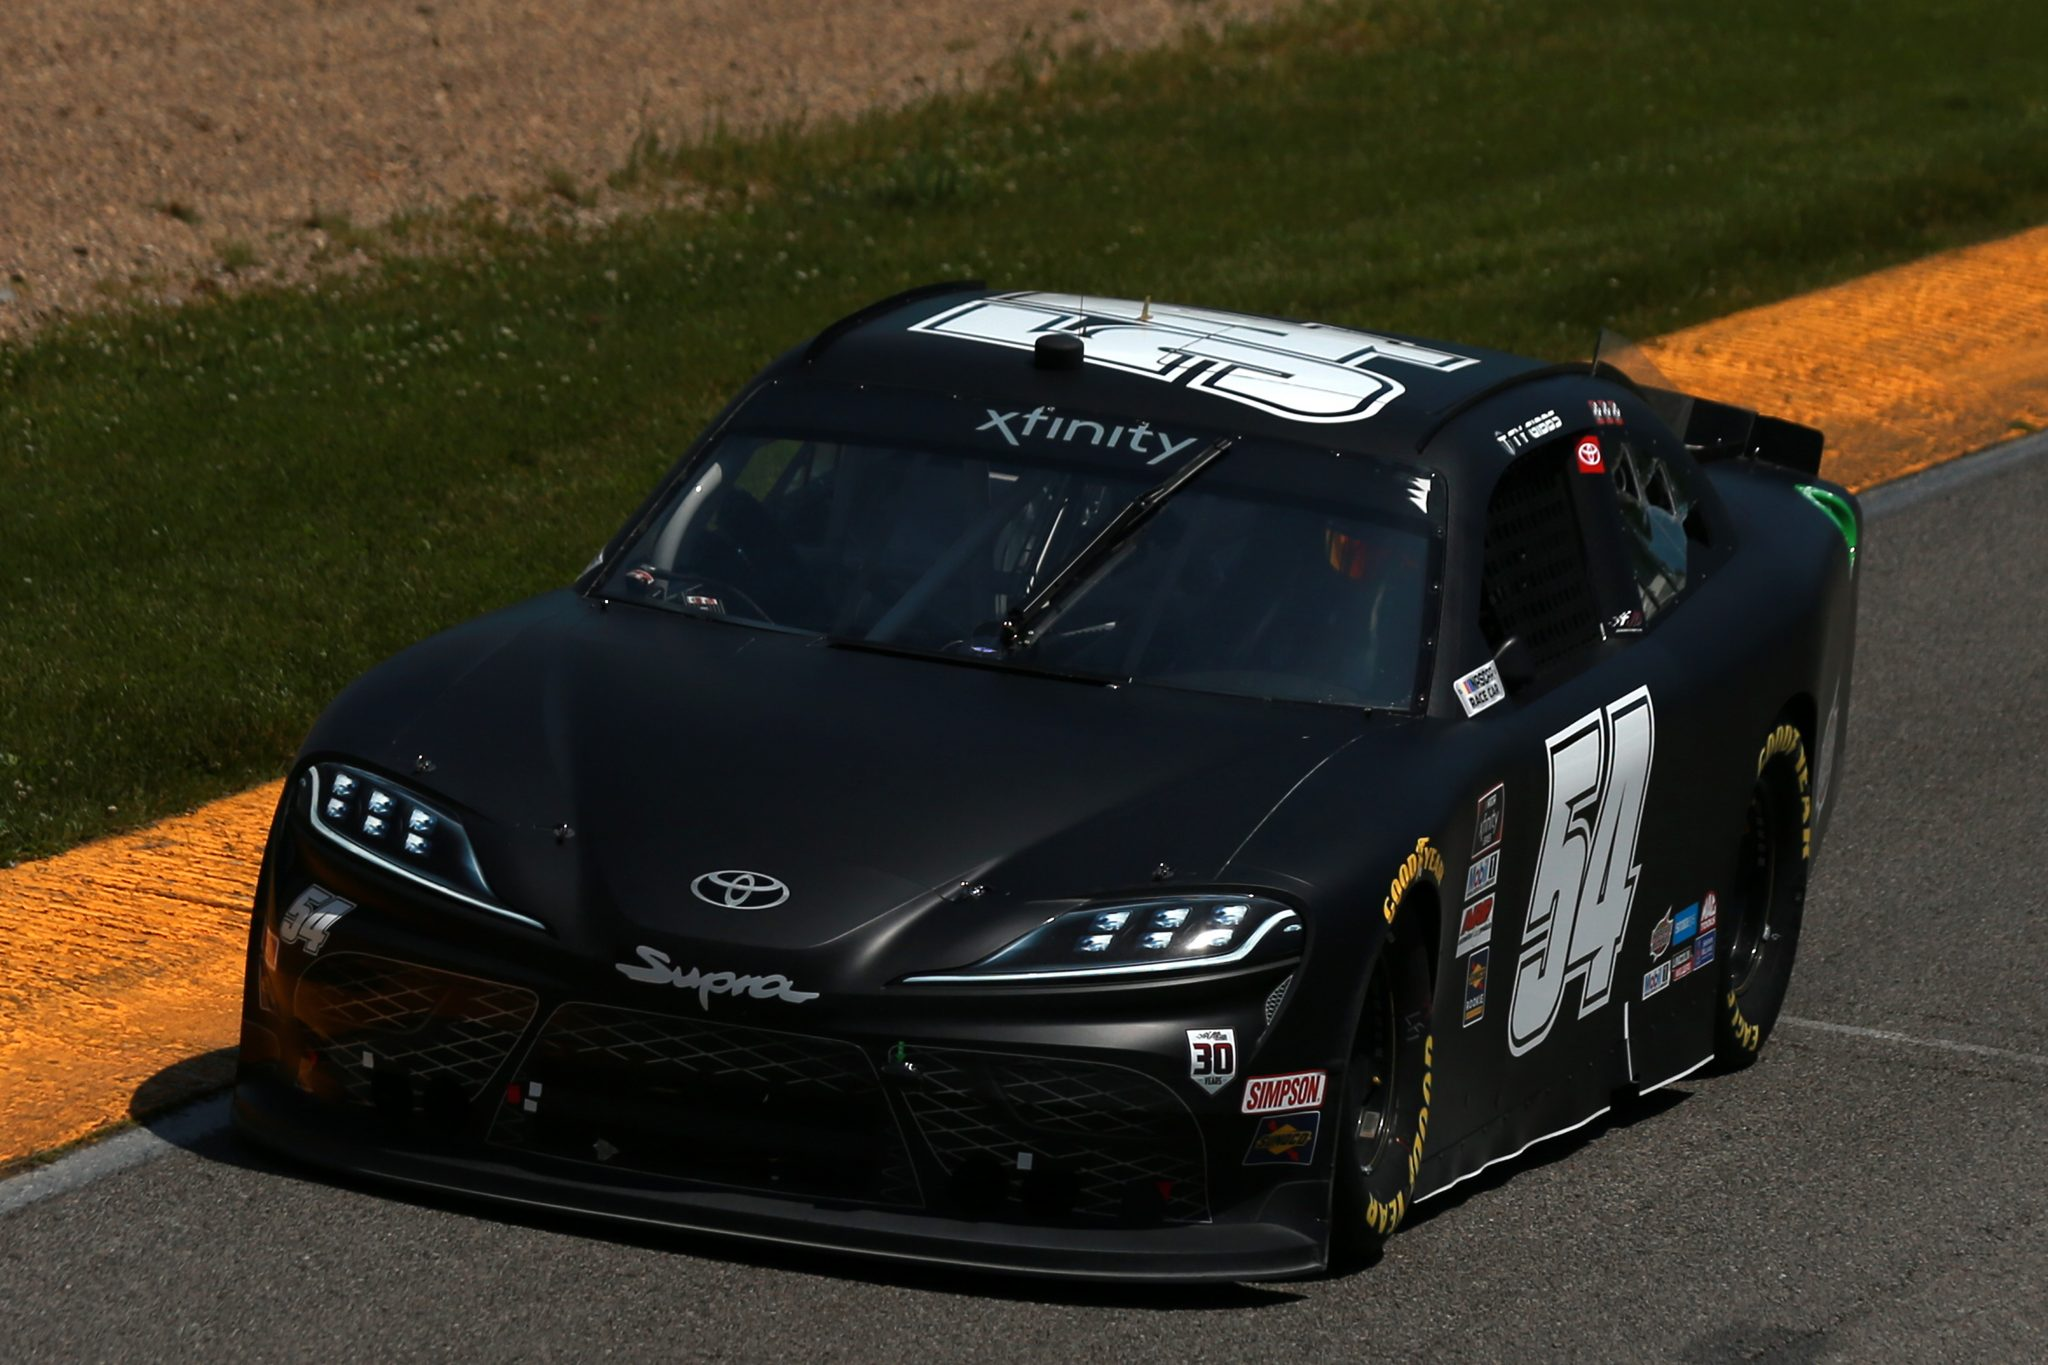 LEXINGTON, OHIO - JUNE 05: Ty Gibbs, driver of the #54 Joe Gibbs Racing Toyota, drives during the NASCAR Xfinity Series B&L Transport 170 at Mid-Ohio Sports Car Course on June 05, 2021 in Lexington, Ohio. (Photo by Sean Gardner/Getty Images) | Getty Images